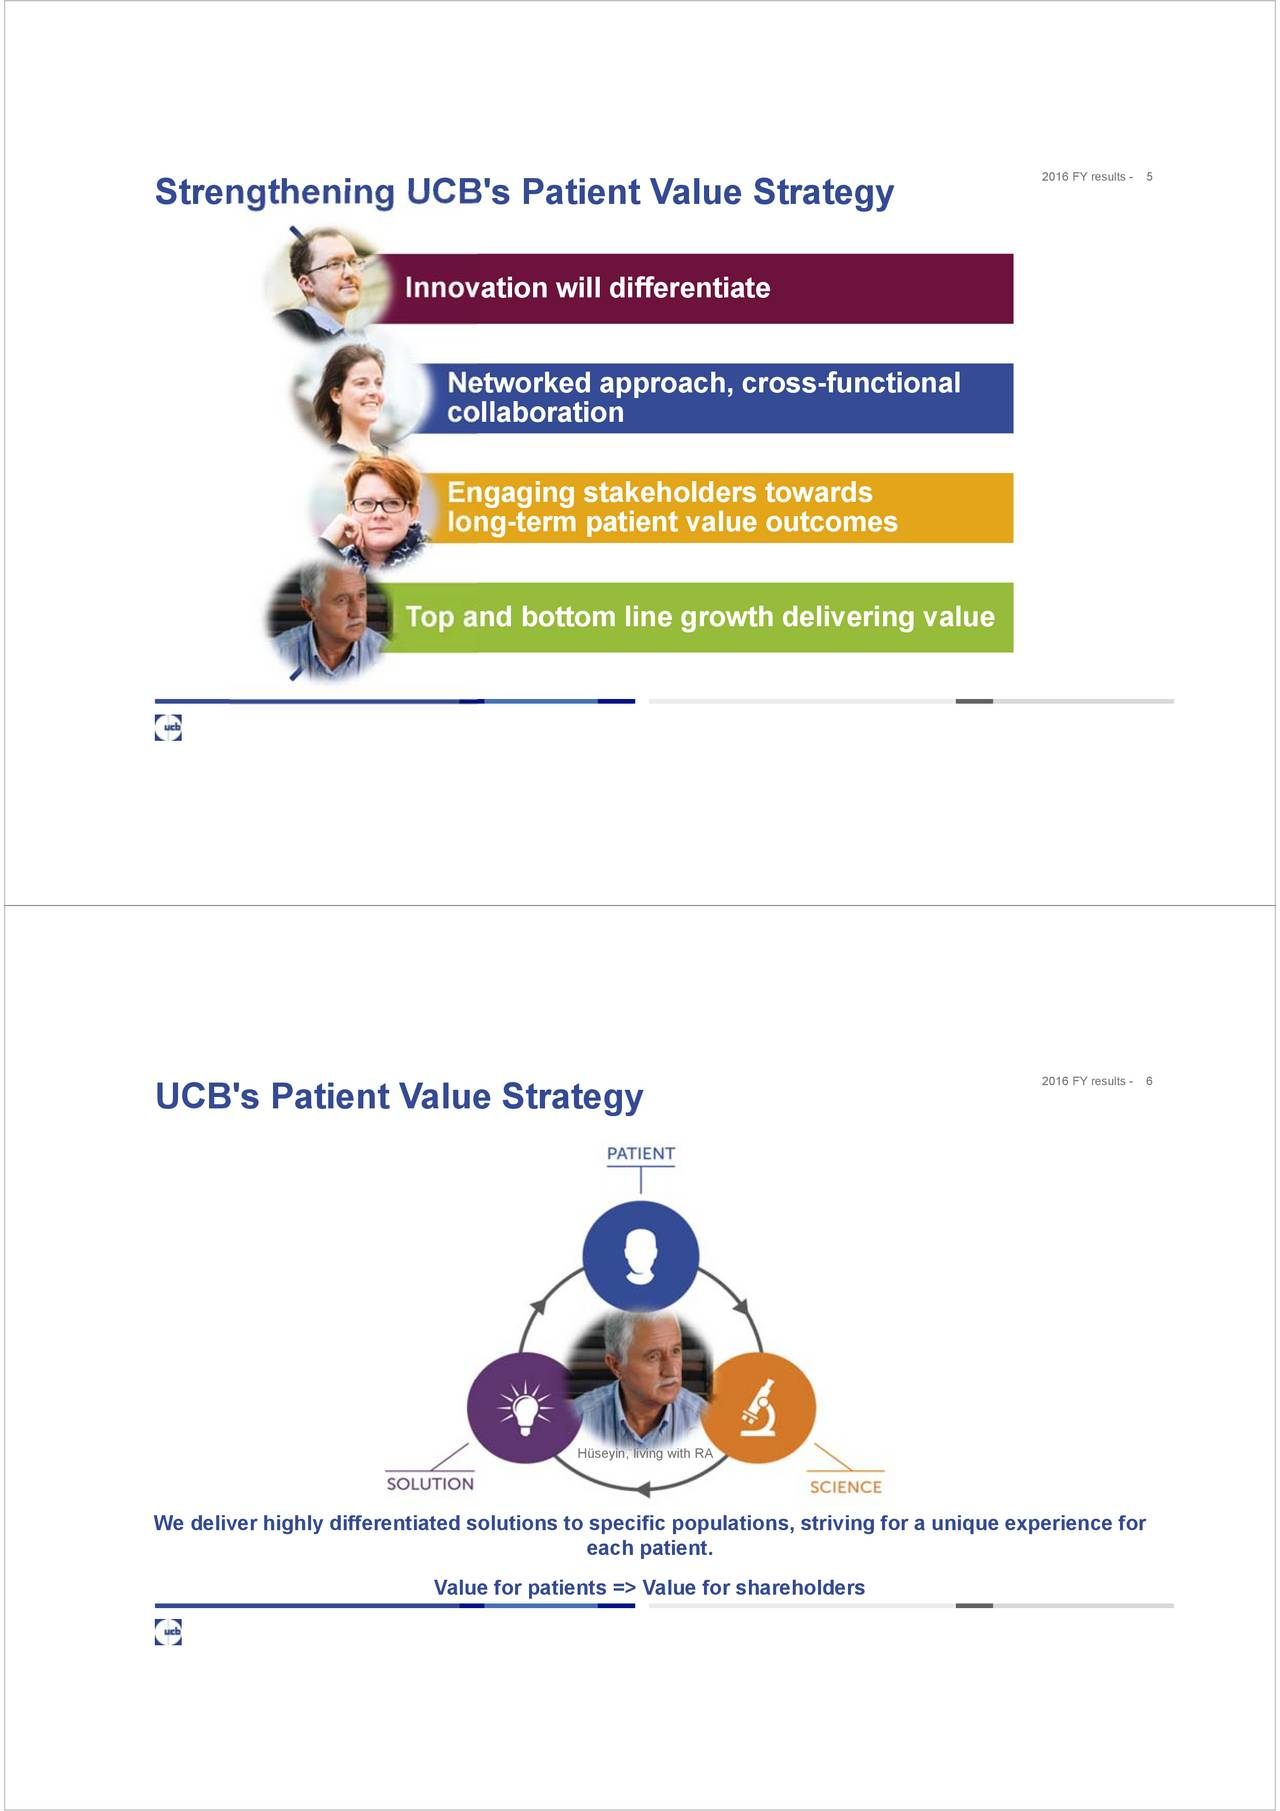 Strengthening UCB's Patient Value Strategy Innovation will differentiate Networked approach, cross-functional collaboration Engaging stakeholders towards long-term patient value outcomes Top and bottom line growth delivering value 2016 FY re6ults - UCB's Patient Value Strategy Hseyin, living with RA We deliver highly differentiated solutions to specific populations, striving for a unique experience for each patient. Value for patients => Value for shareholders